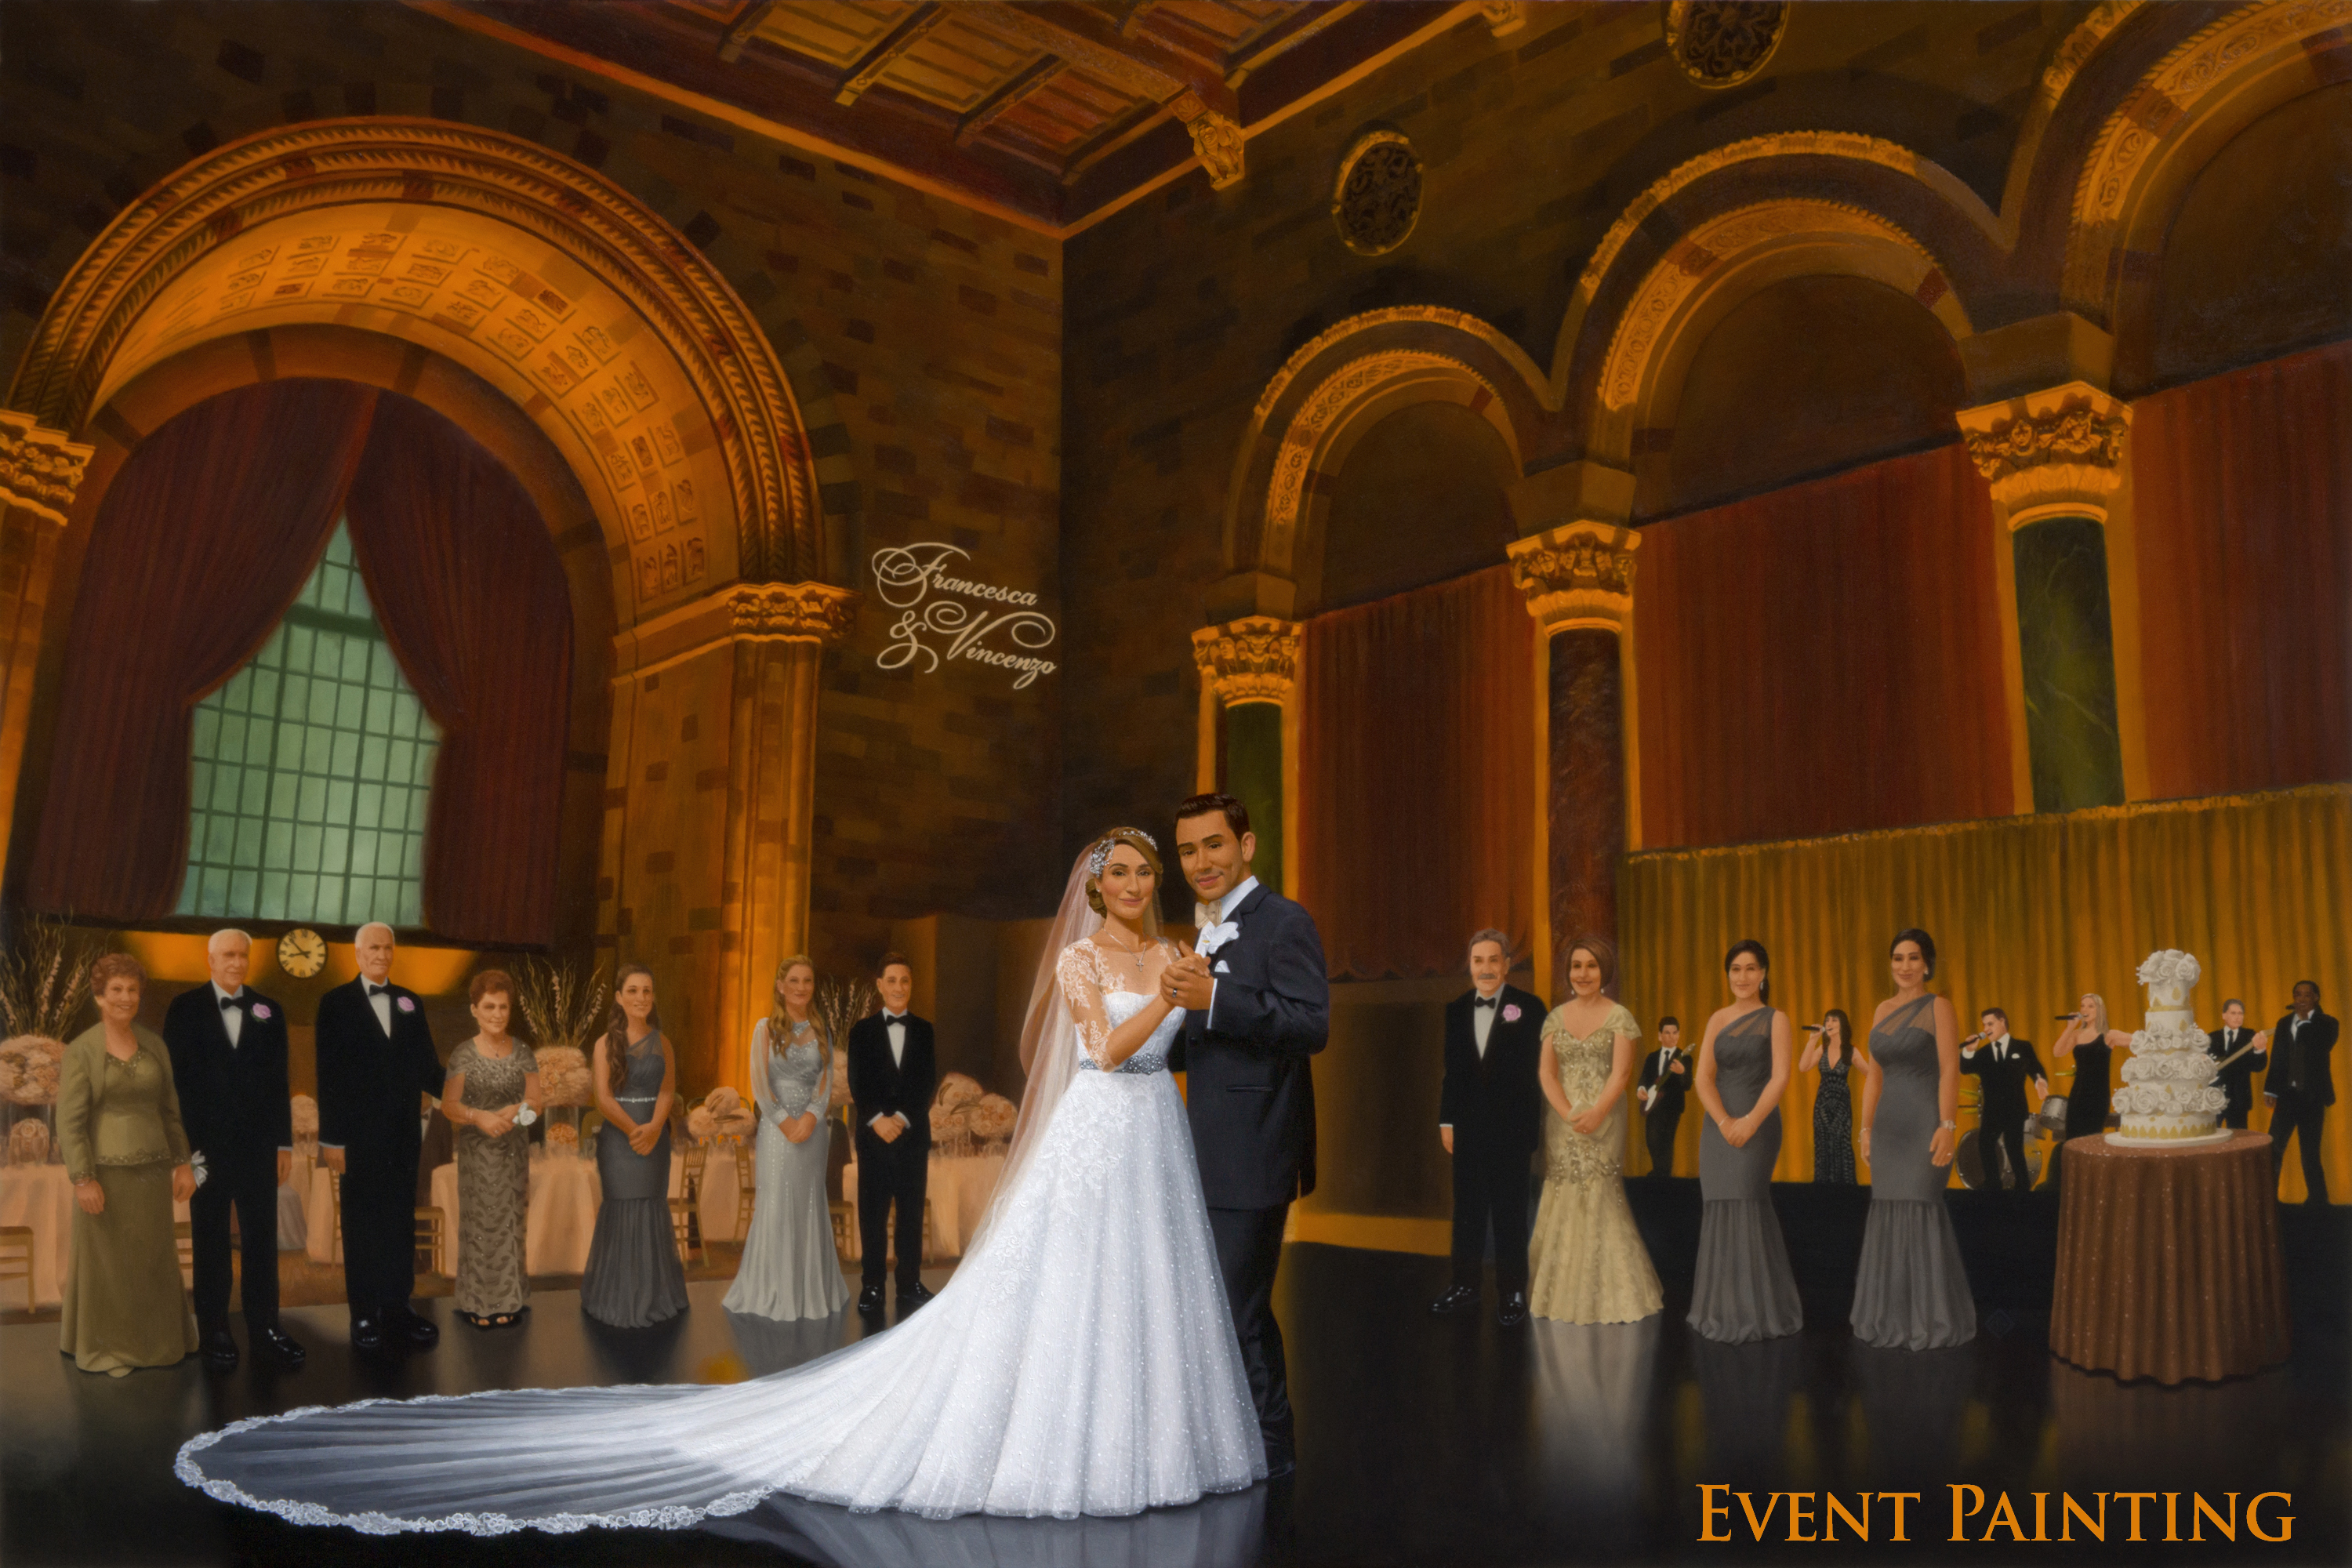 Magestic New York City Wedding Reception at Historic Cipriani 42nd Street - Live Event Painter Anthony Galati